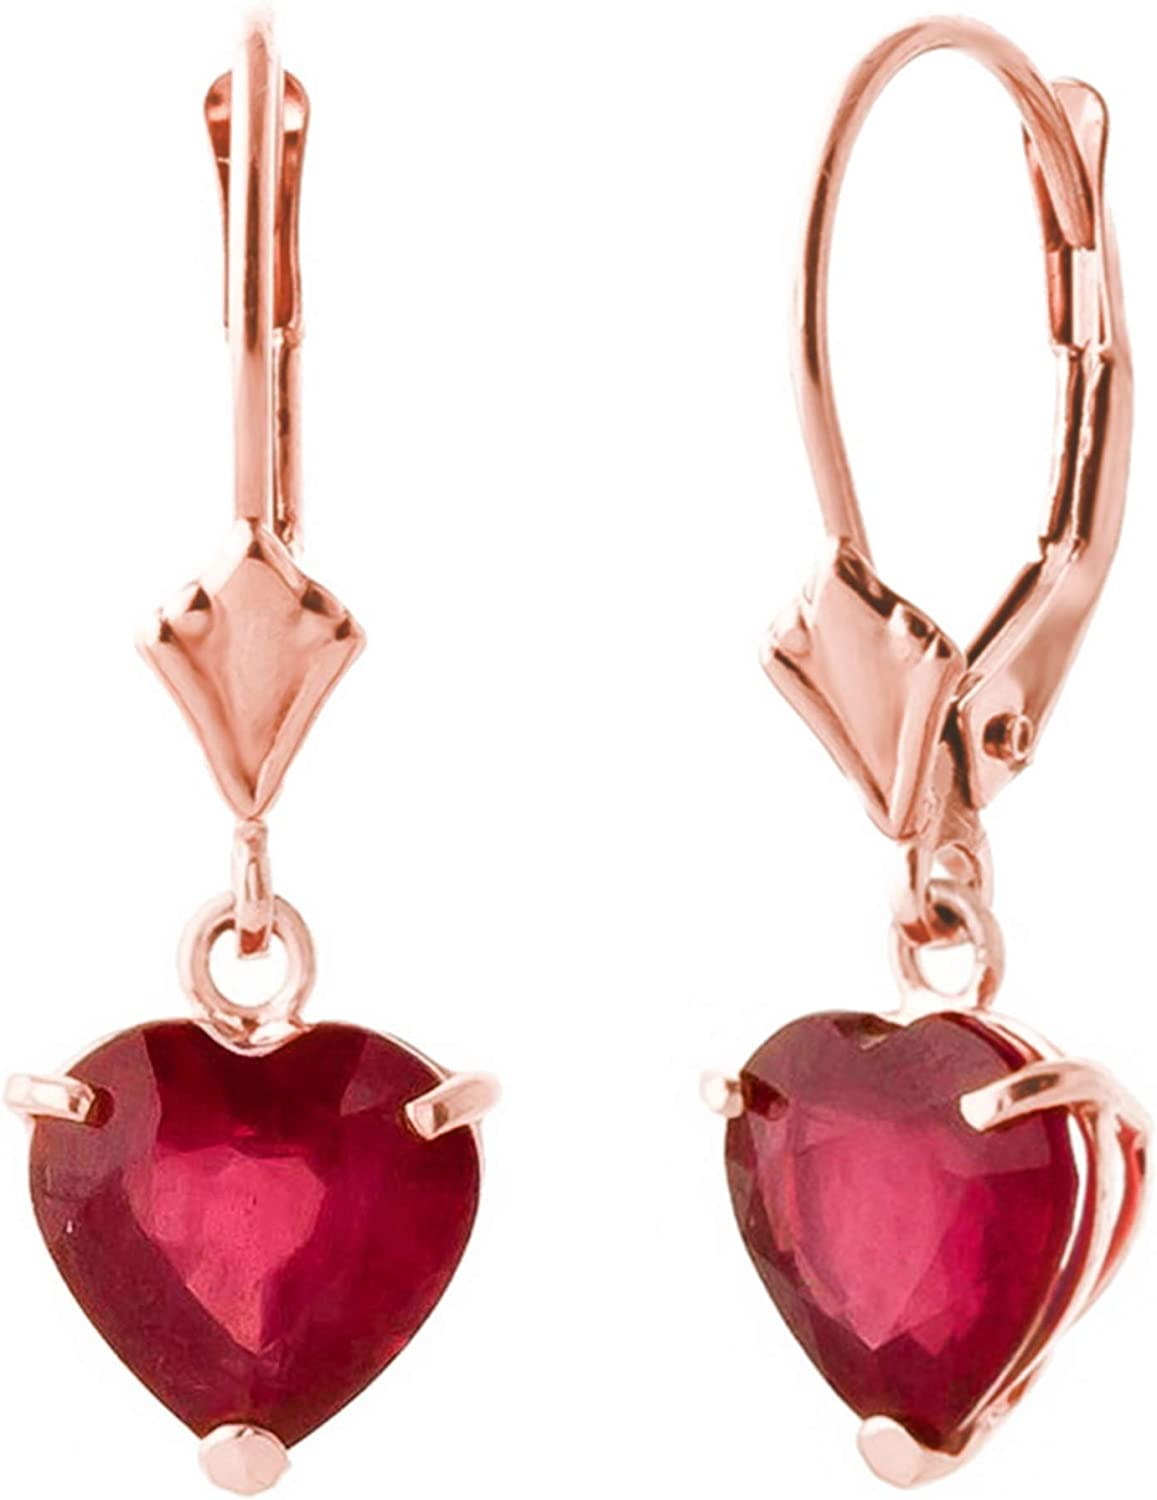 Galaxy Gold 2.9 Year-end annual account CTW 14k Solid Leverback Earrings Over item handling ☆ Heart Rose